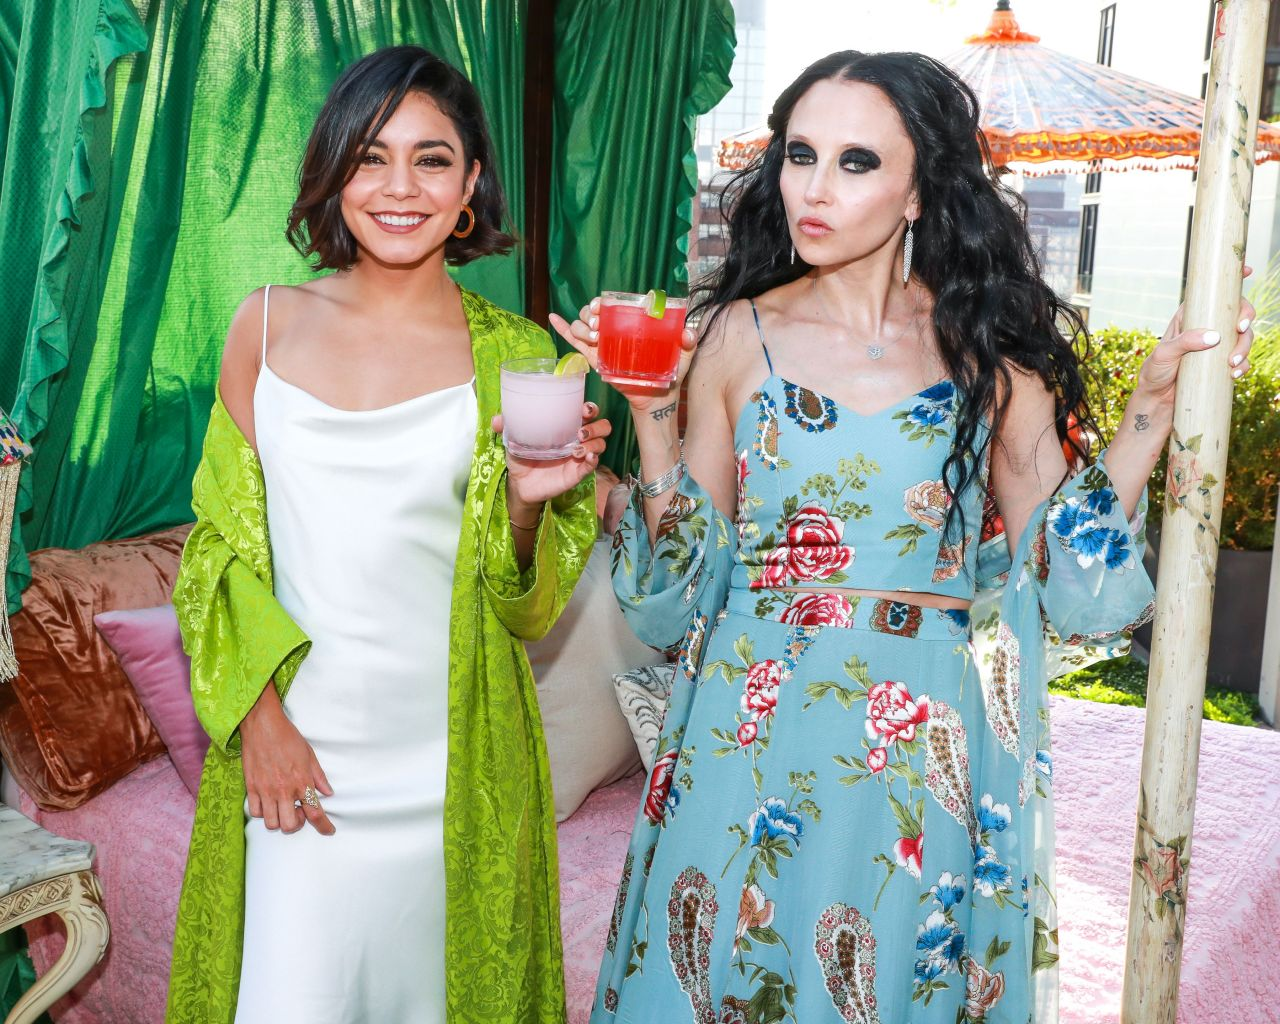 bc2a41f5cd2f1 Vanessa Hudgens Attends alice + olivia Jose Cuervo Launch in NYC 06/22/2017